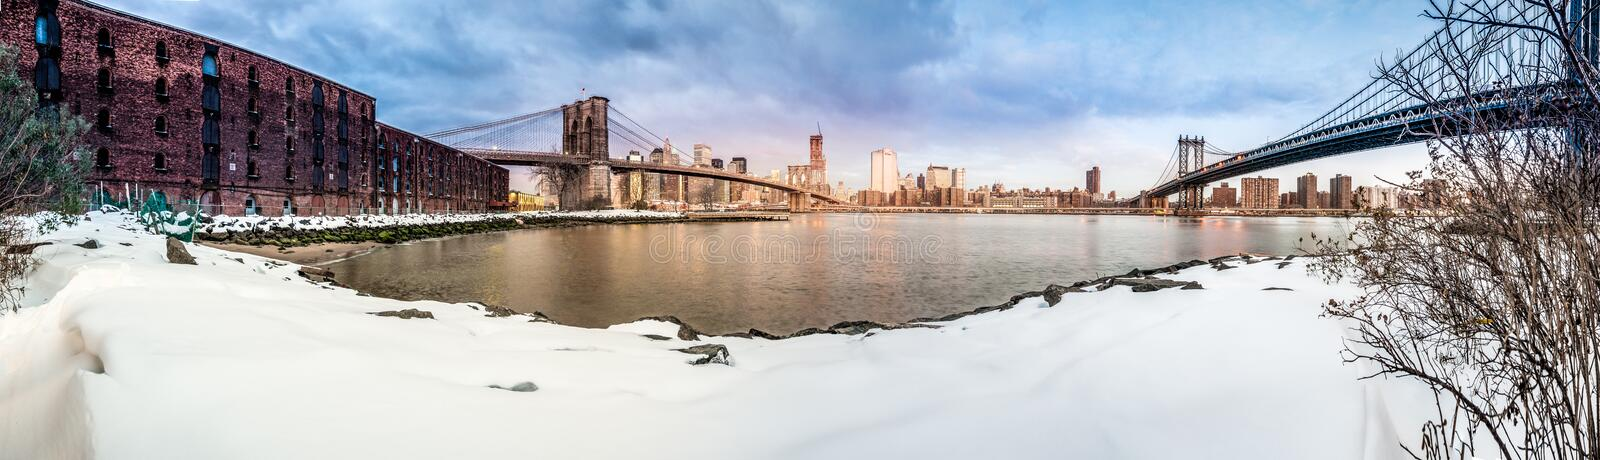 Manhattan Skyline from Pebble Beach in Brooklyn, United States. Manhattan Skyline sunrise as seen from Pebble Beach in Brooklyn, New York, United States of royalty free stock photo